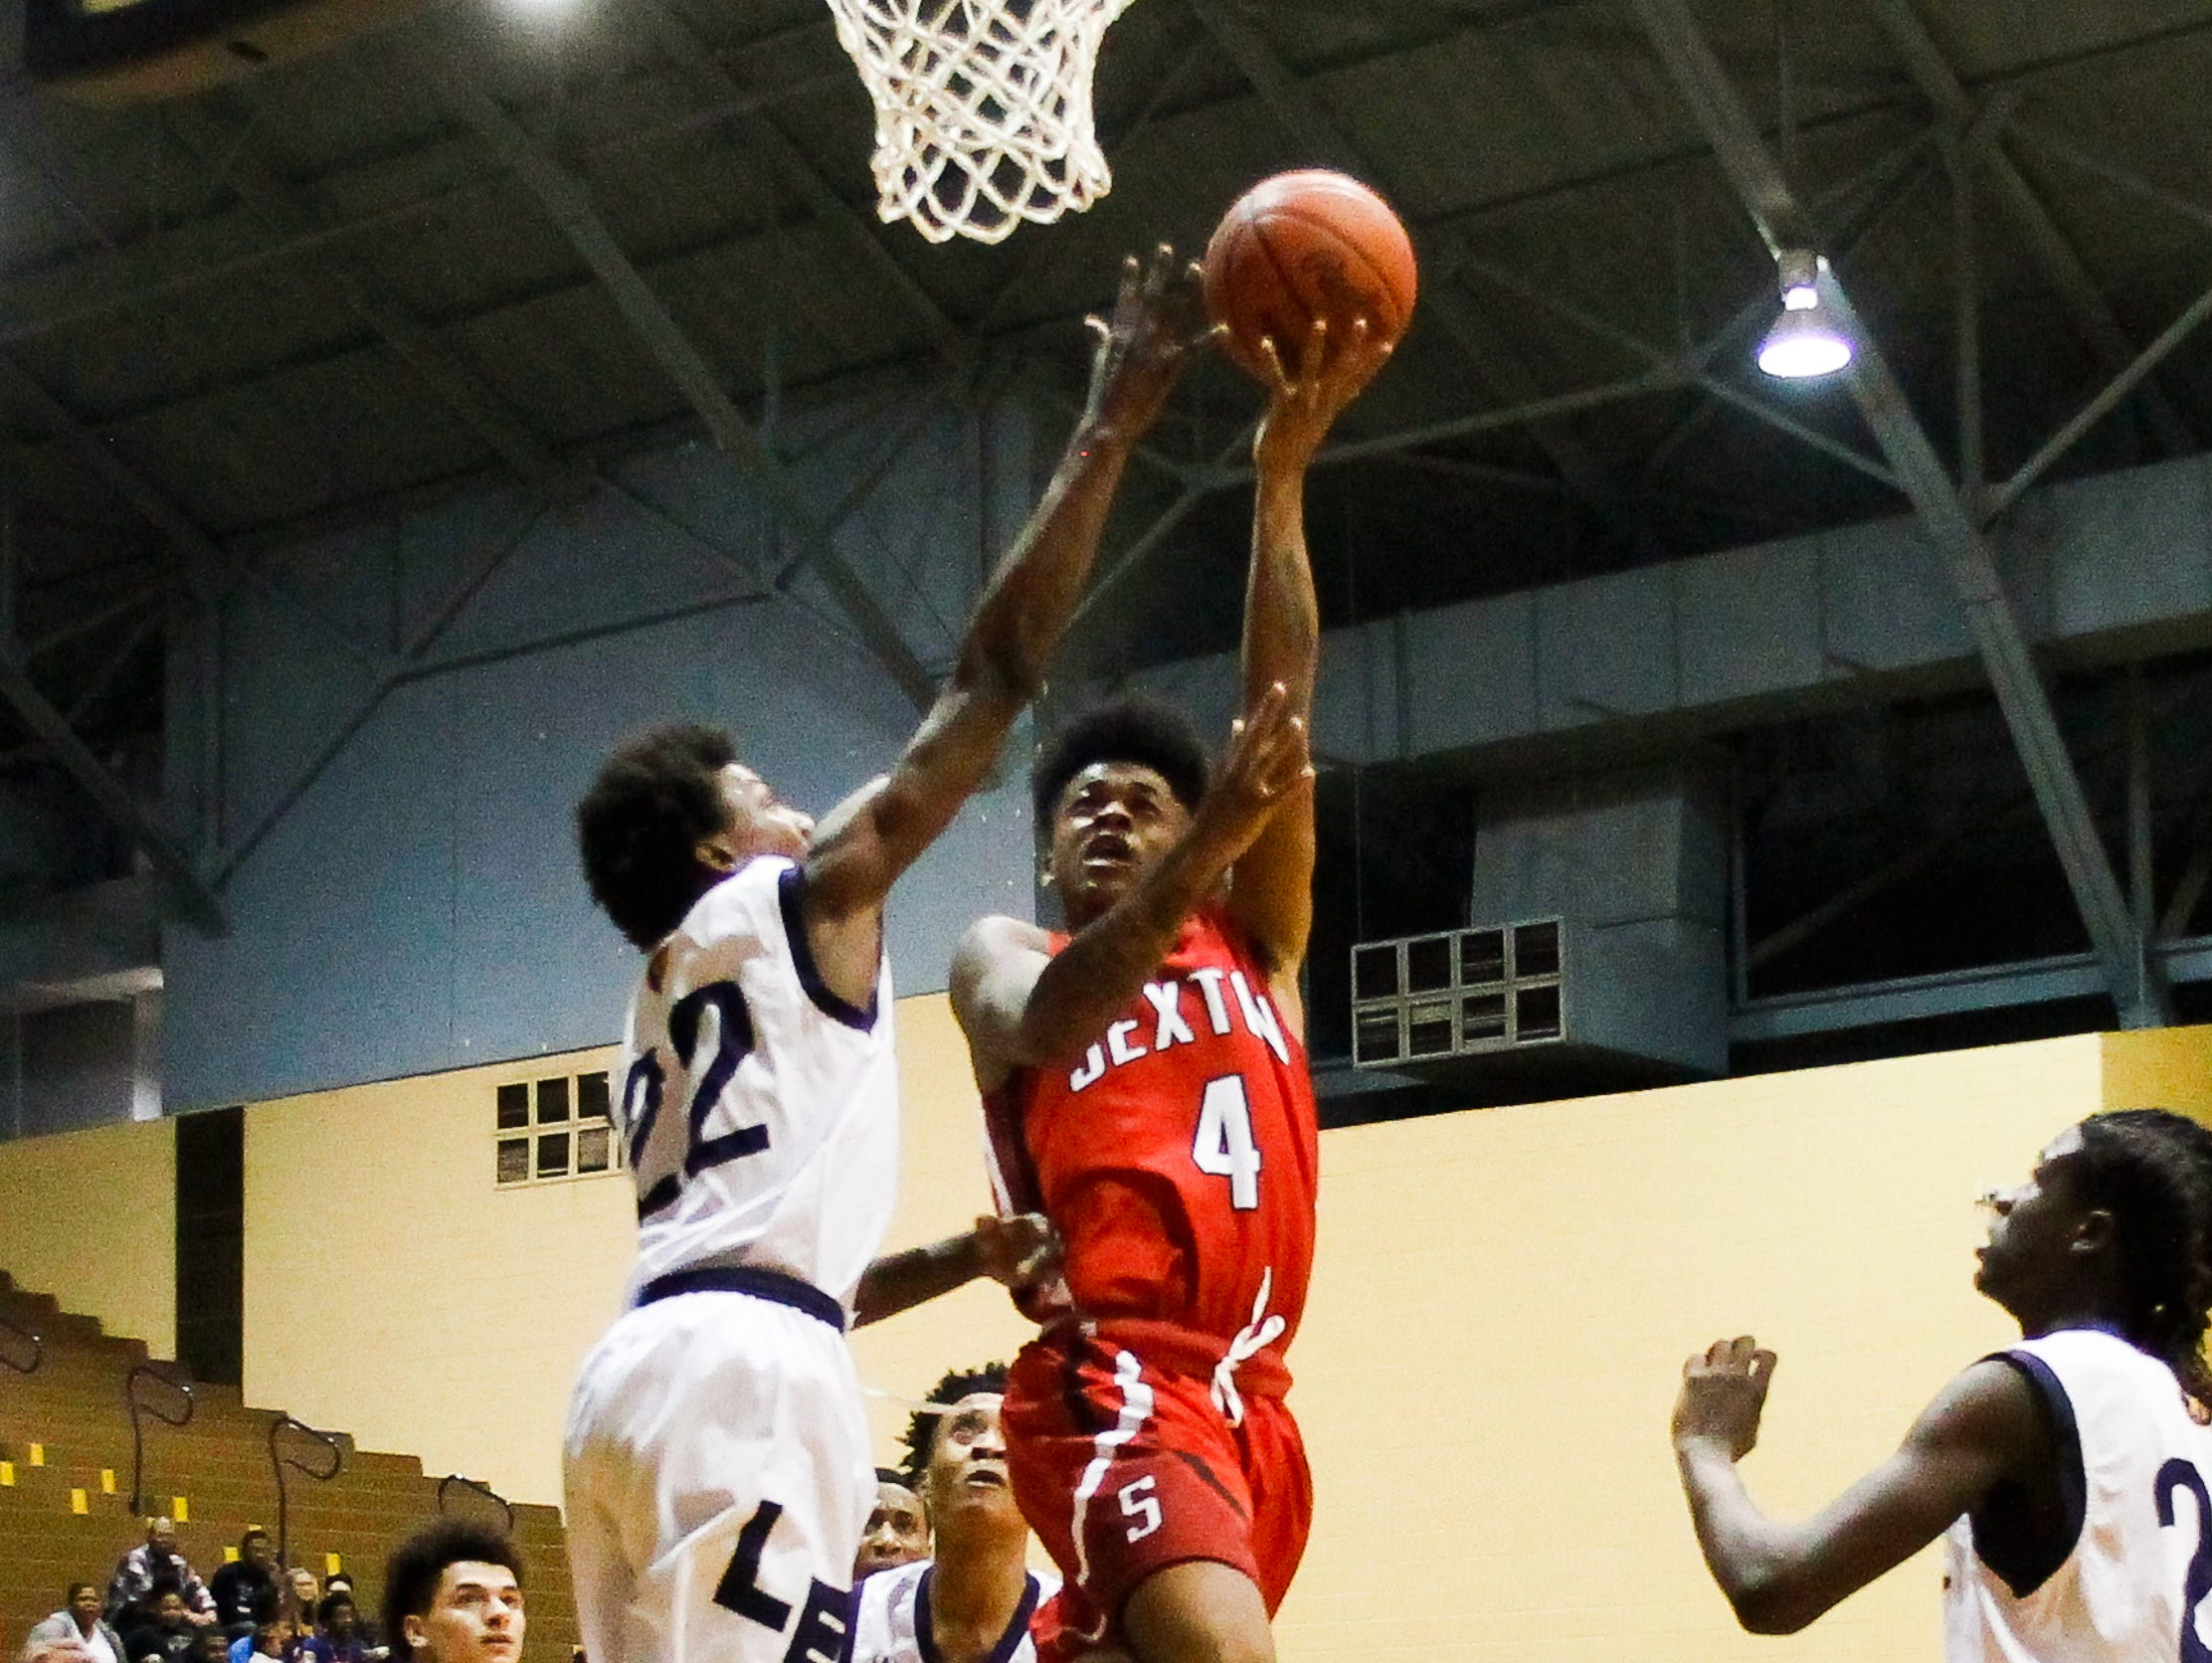 Sexton guard Marcus Alston drops in a layup from the paint against Lansing Eastern's Markiest Doss Friday, Feb. 24, 2017, at Don Johnson Fieldhouse in Lansing.